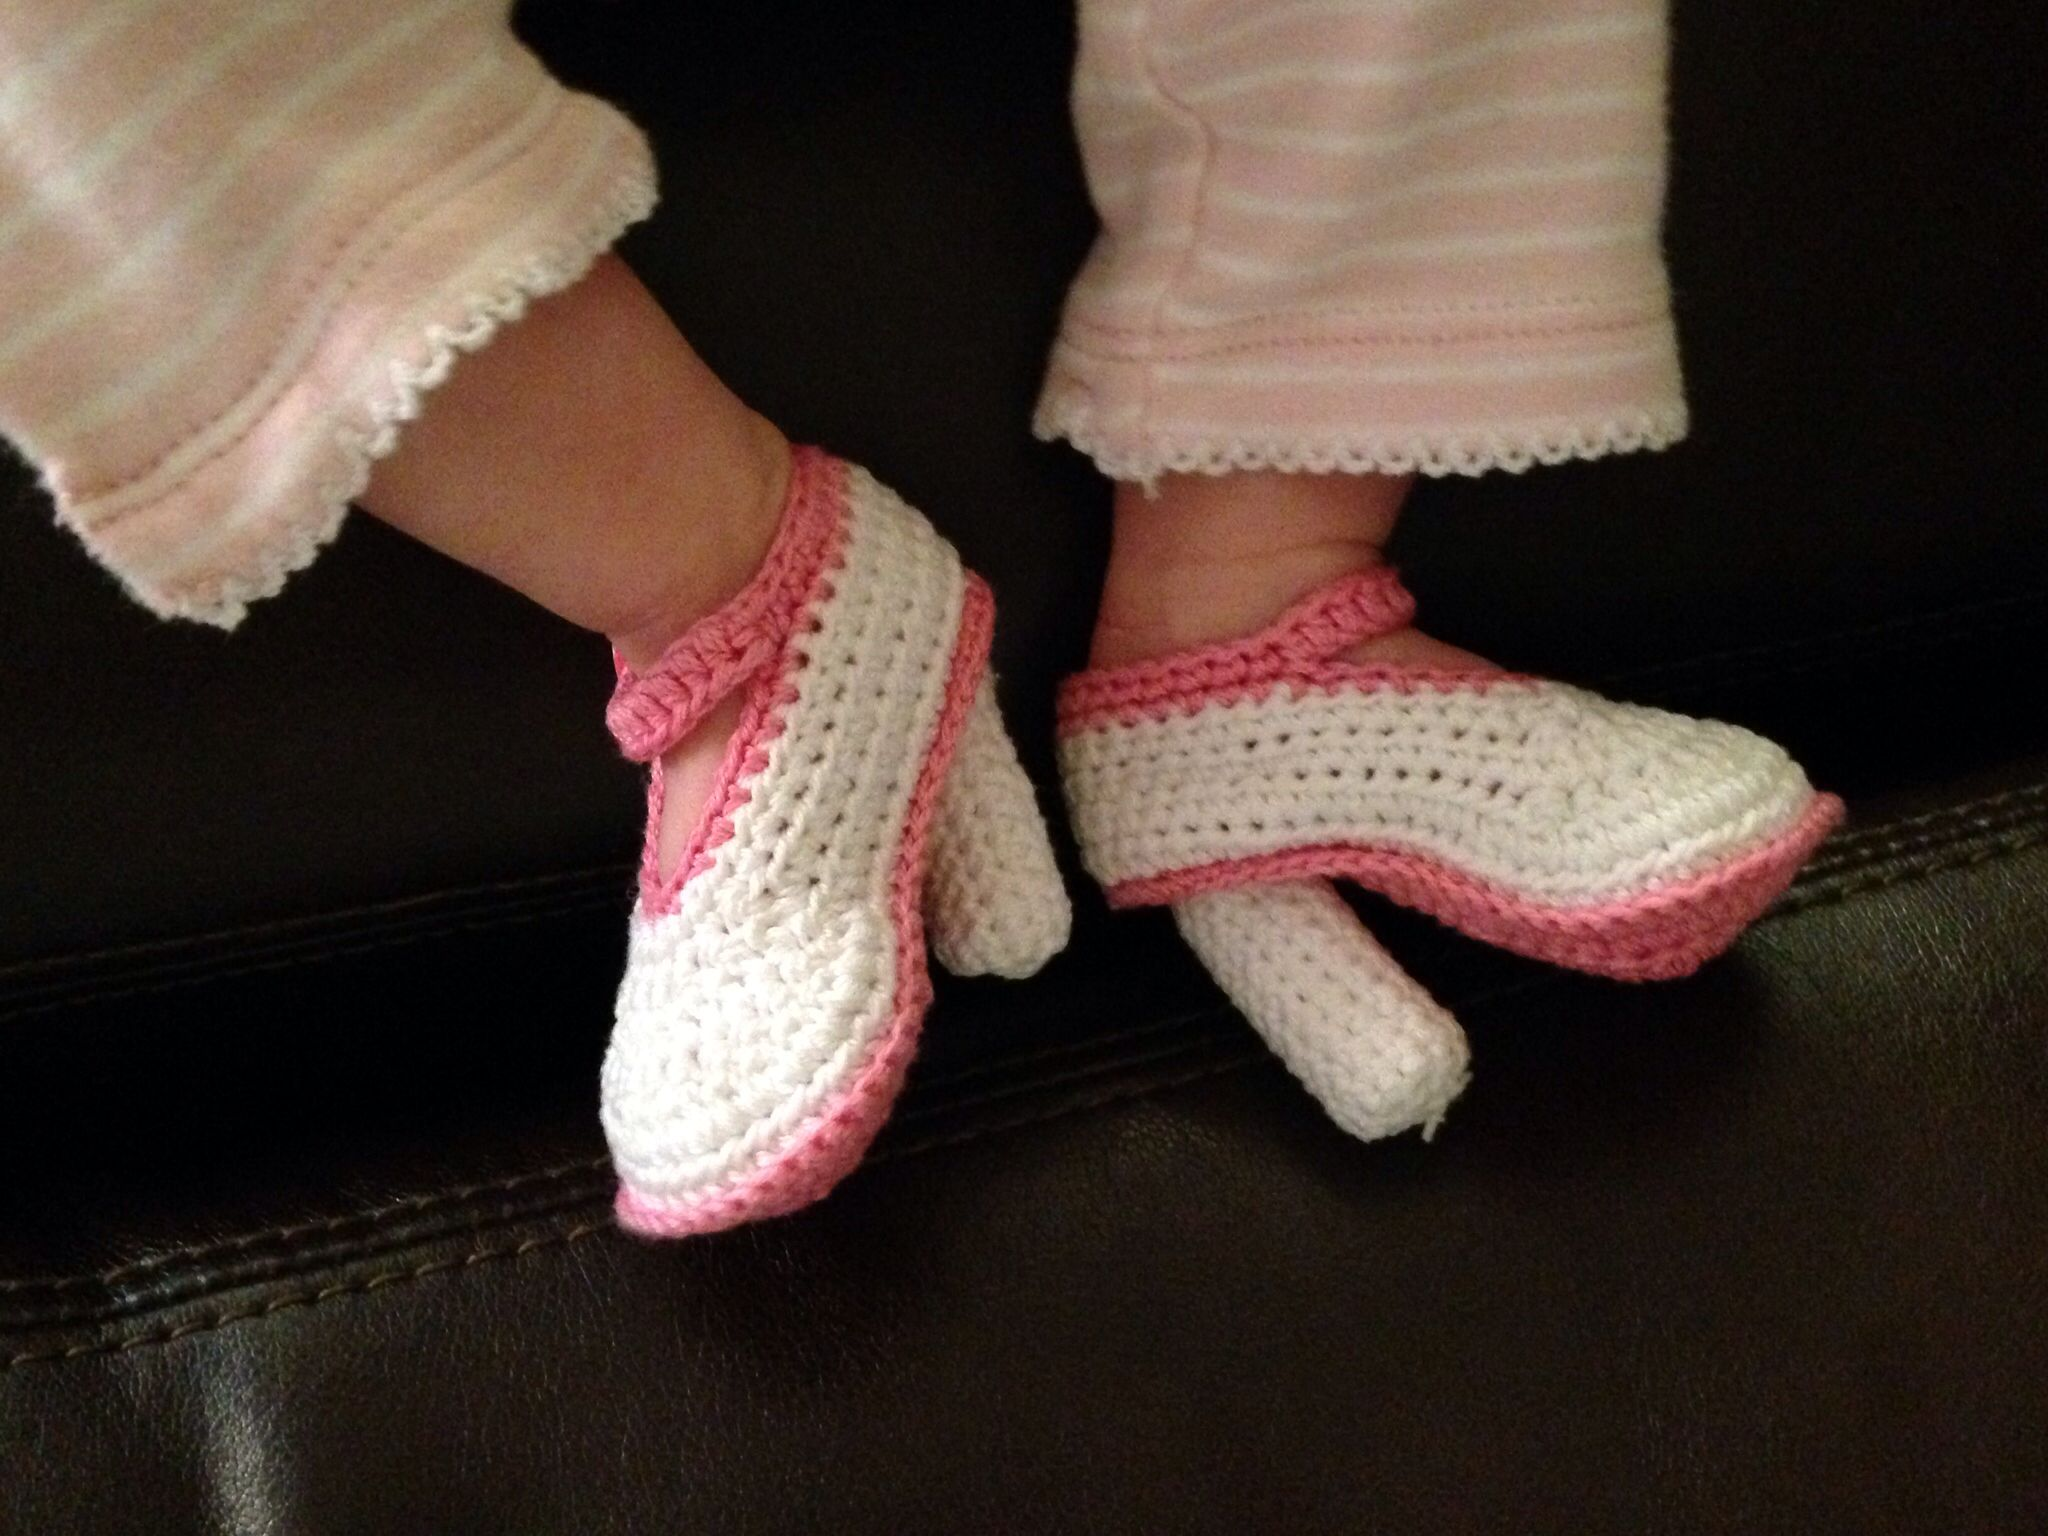 Baby high heel shoes - hilarious!